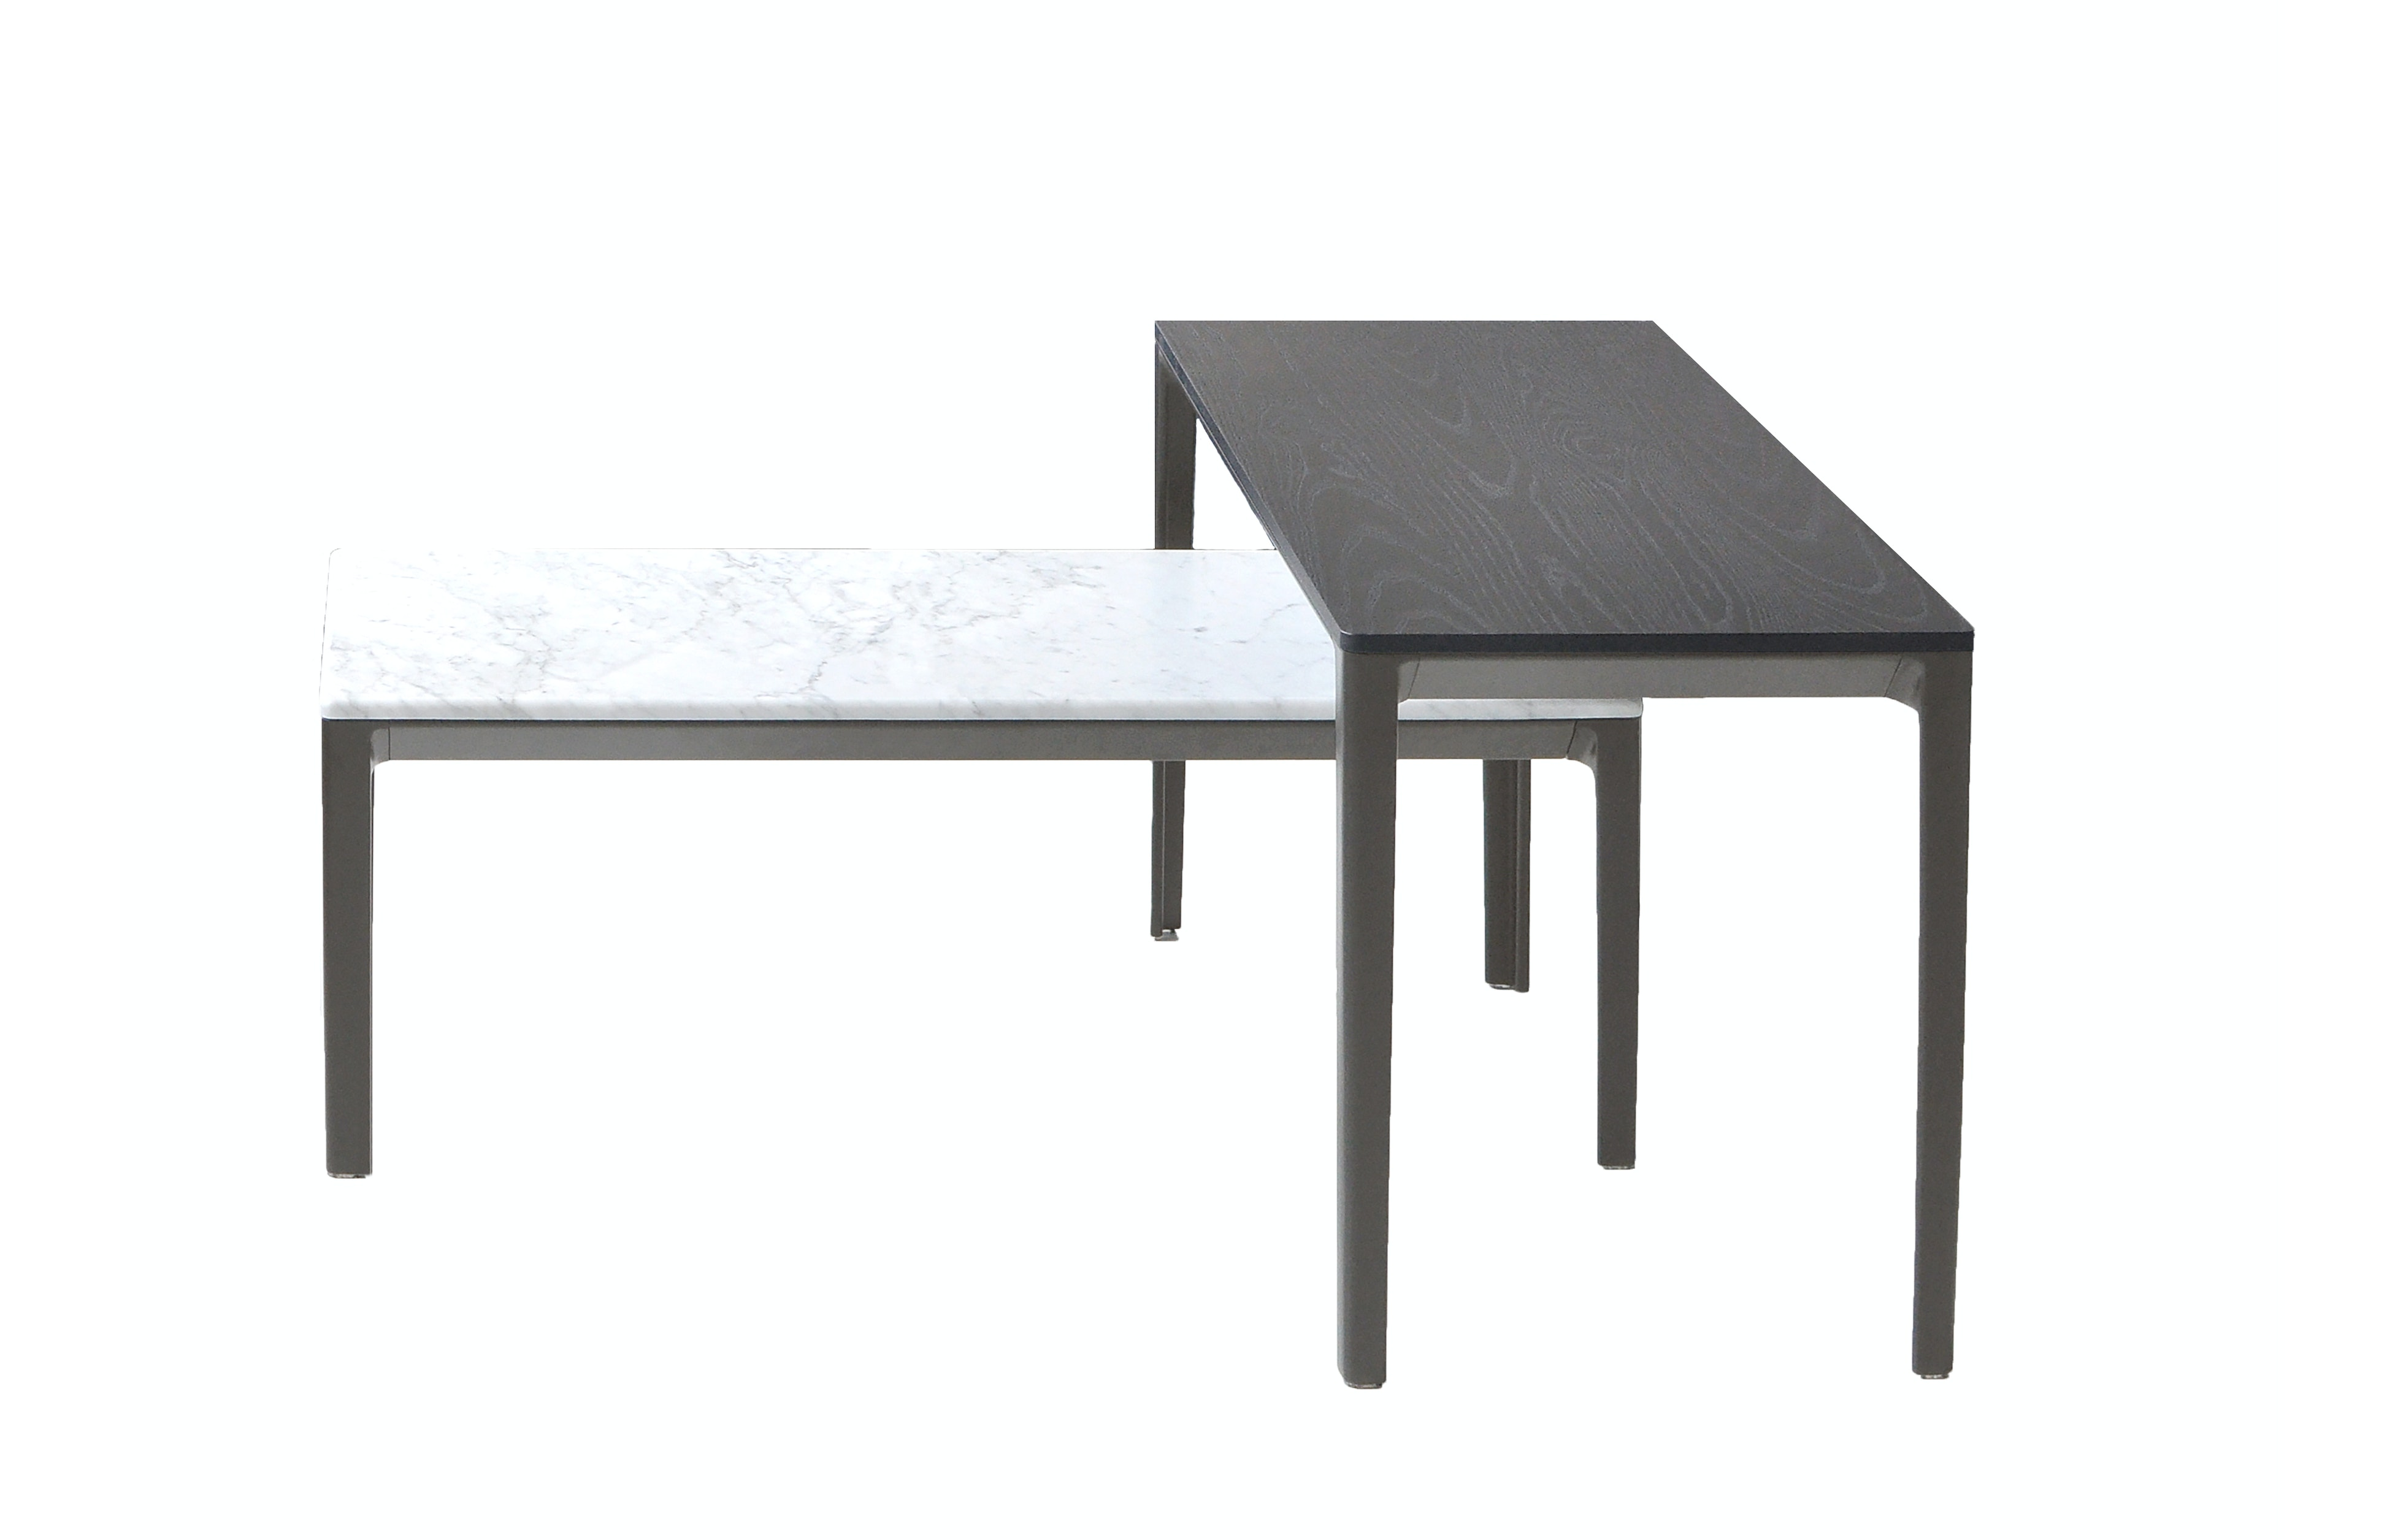 Modern dining tables by contemporary designers at haute living bensen able occasional low table 1 graphite leg copy watchthetrailerfo